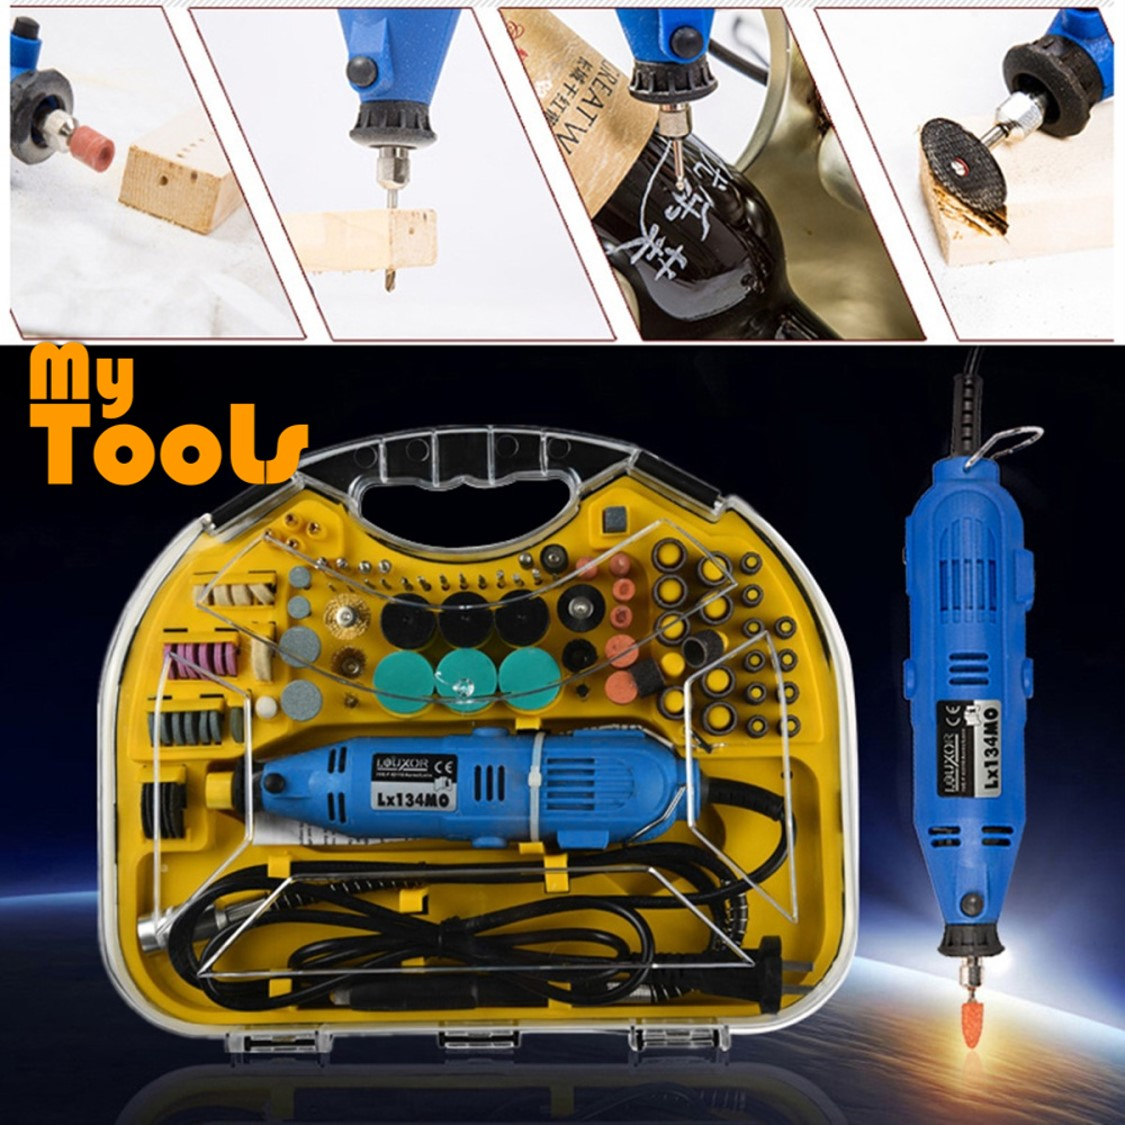 Mytools 211pcs Rotary Tool Mini Drill set Grinder Engraver Sander Polisher Cutting Craft